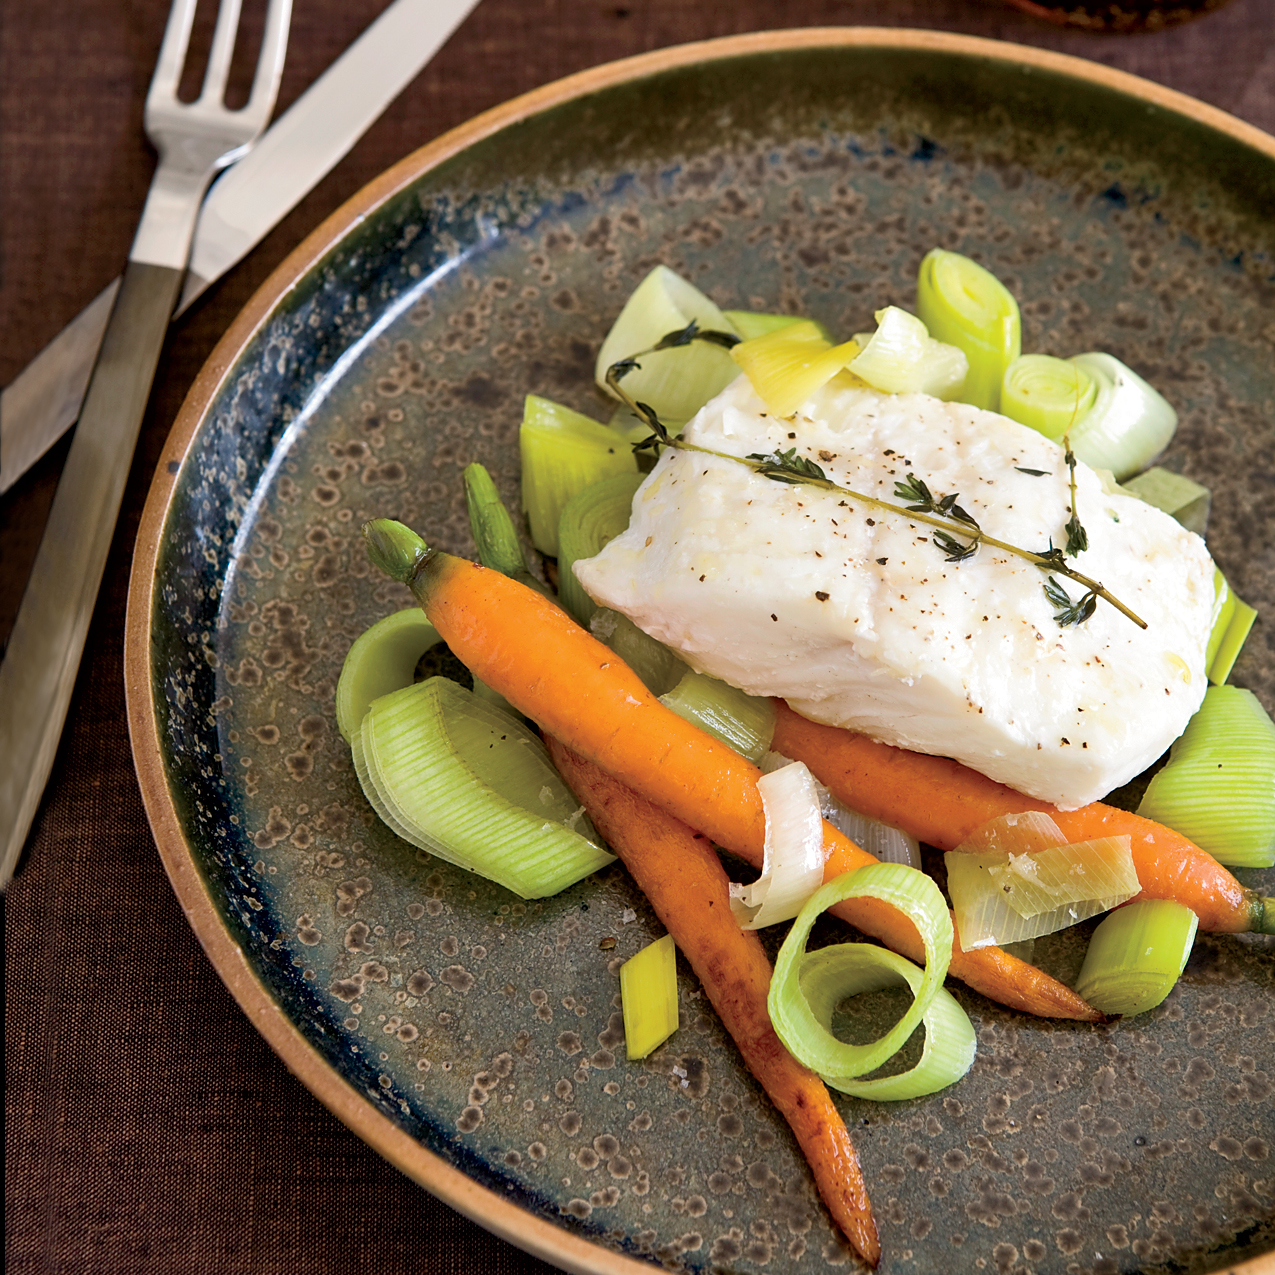 Casserole-Baked Halibut with Leeks and Carrots